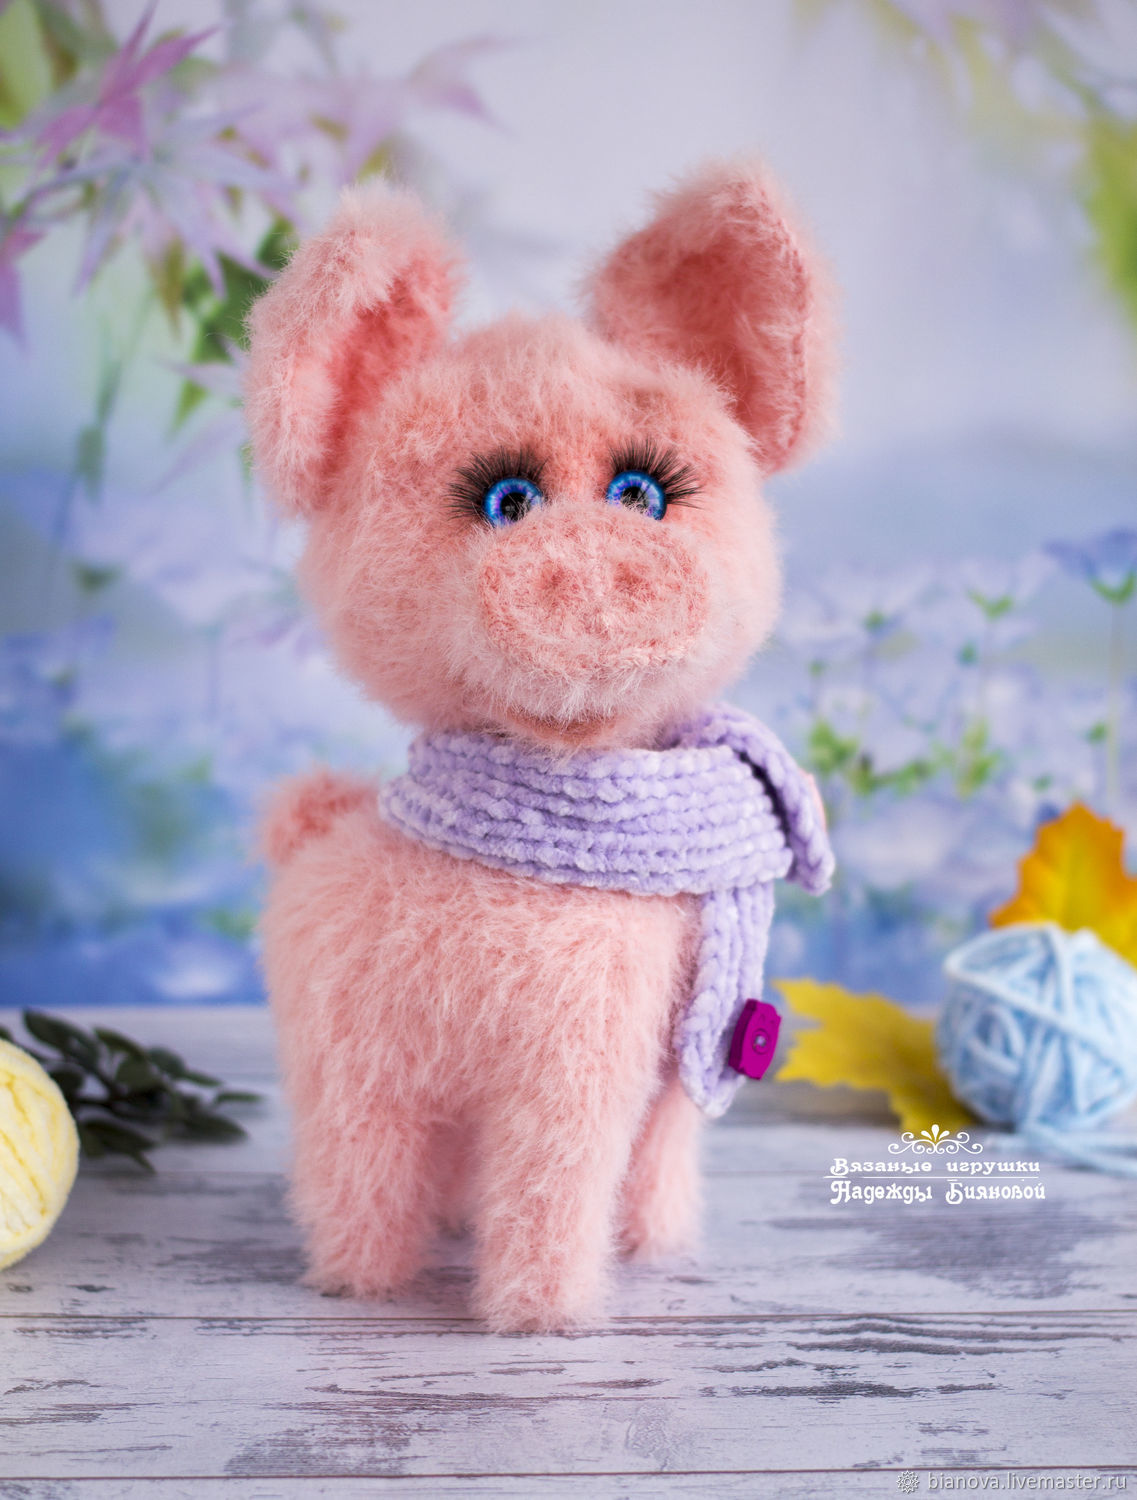 Pig Knitted Gift 21cm Shop Online On Livemaster With Shipping